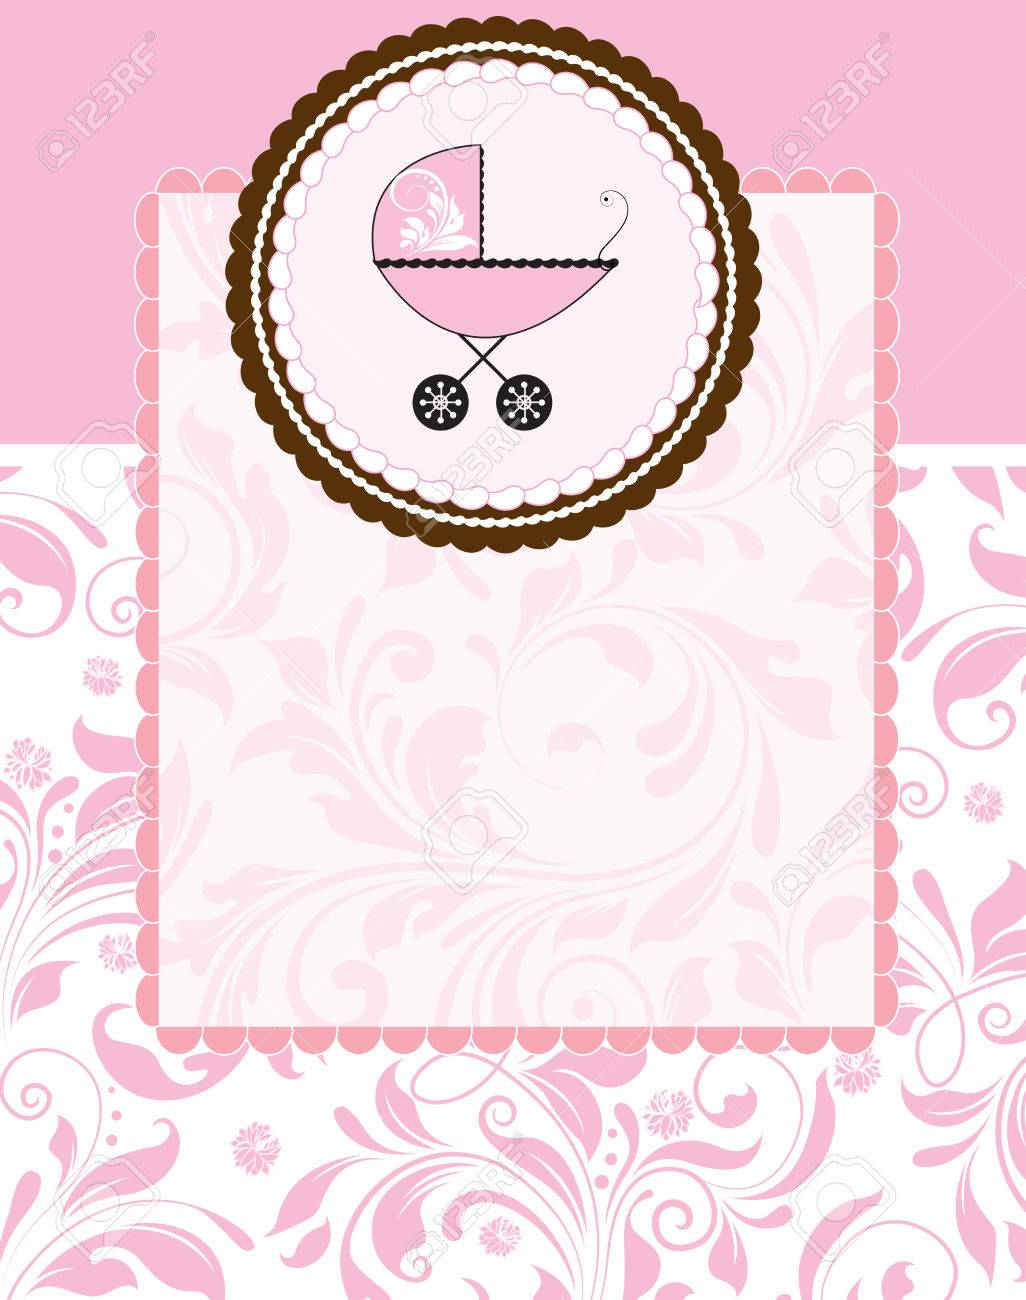 Vintage baby shower invitation card with ornate elegant abstract vector vintage baby shower invitation card with ornate elegant abstract floral design pink flowers on brown with baby carriage on cake stopboris Choice Image